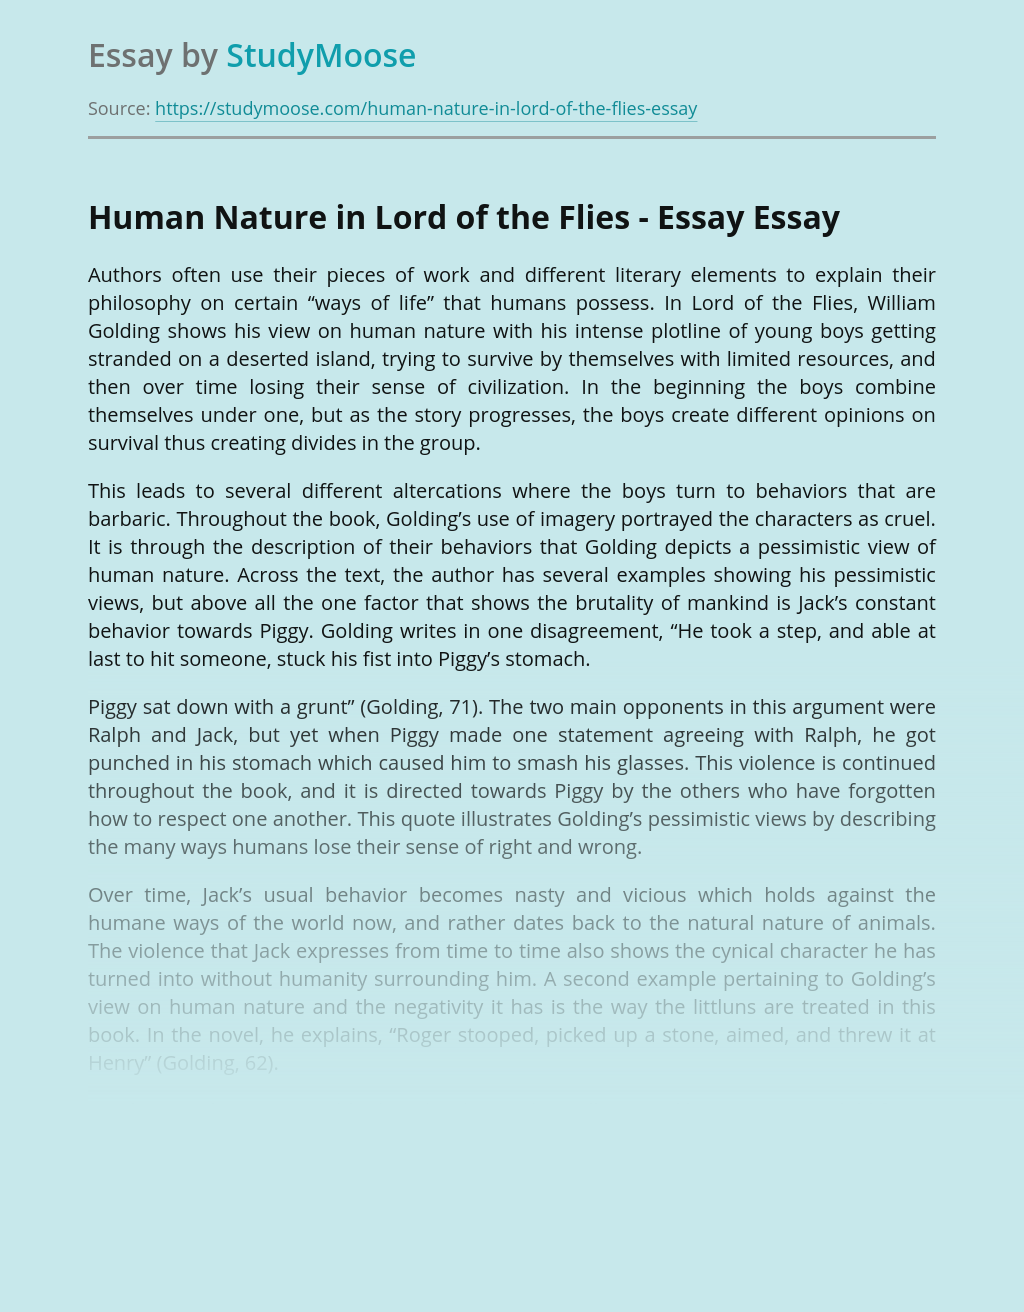 Human Nature in Lord of the Flies - Essay